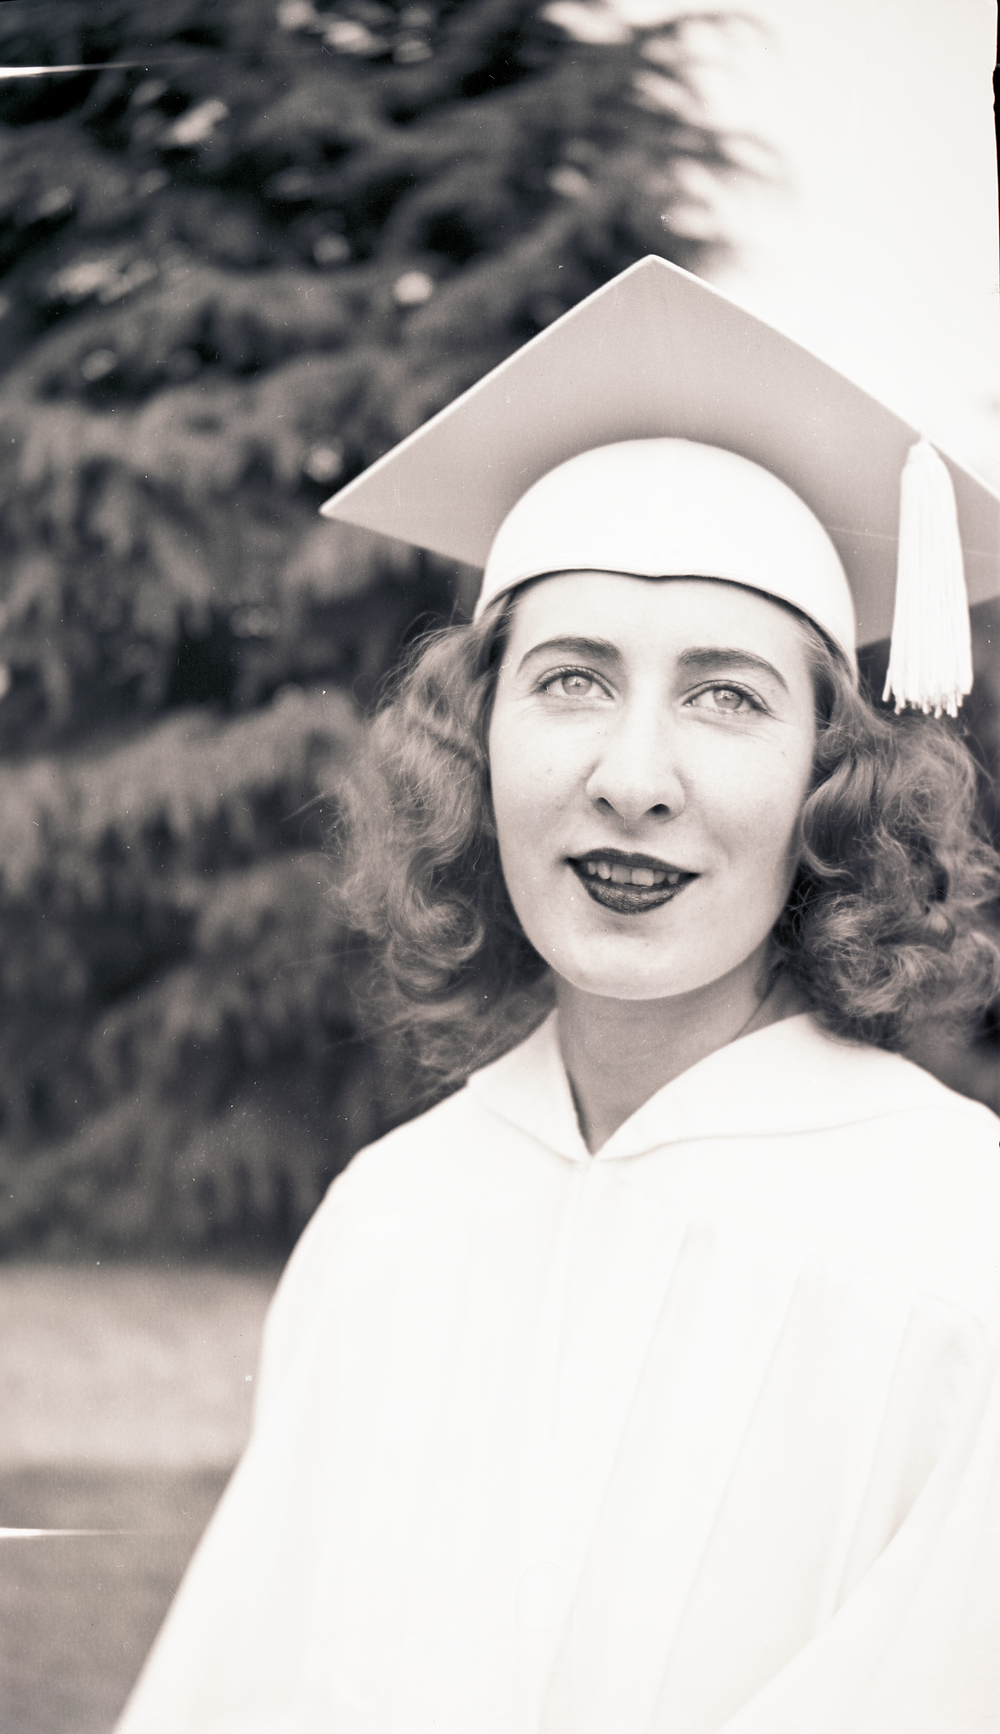 Woman wearing graduation cap and gown.